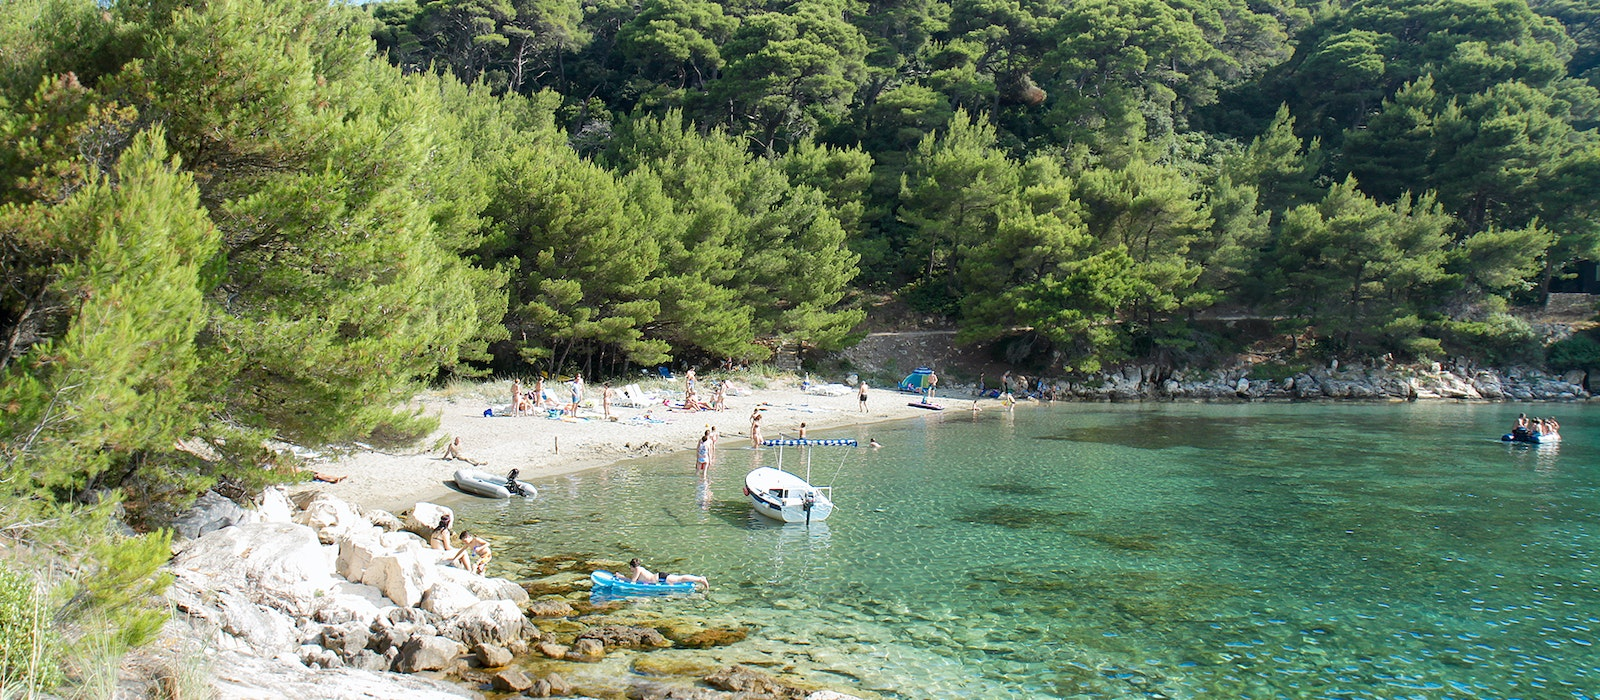 Saplunara beach, on Croatia's Mljet island, known for its saltwater lakes and juniper forests